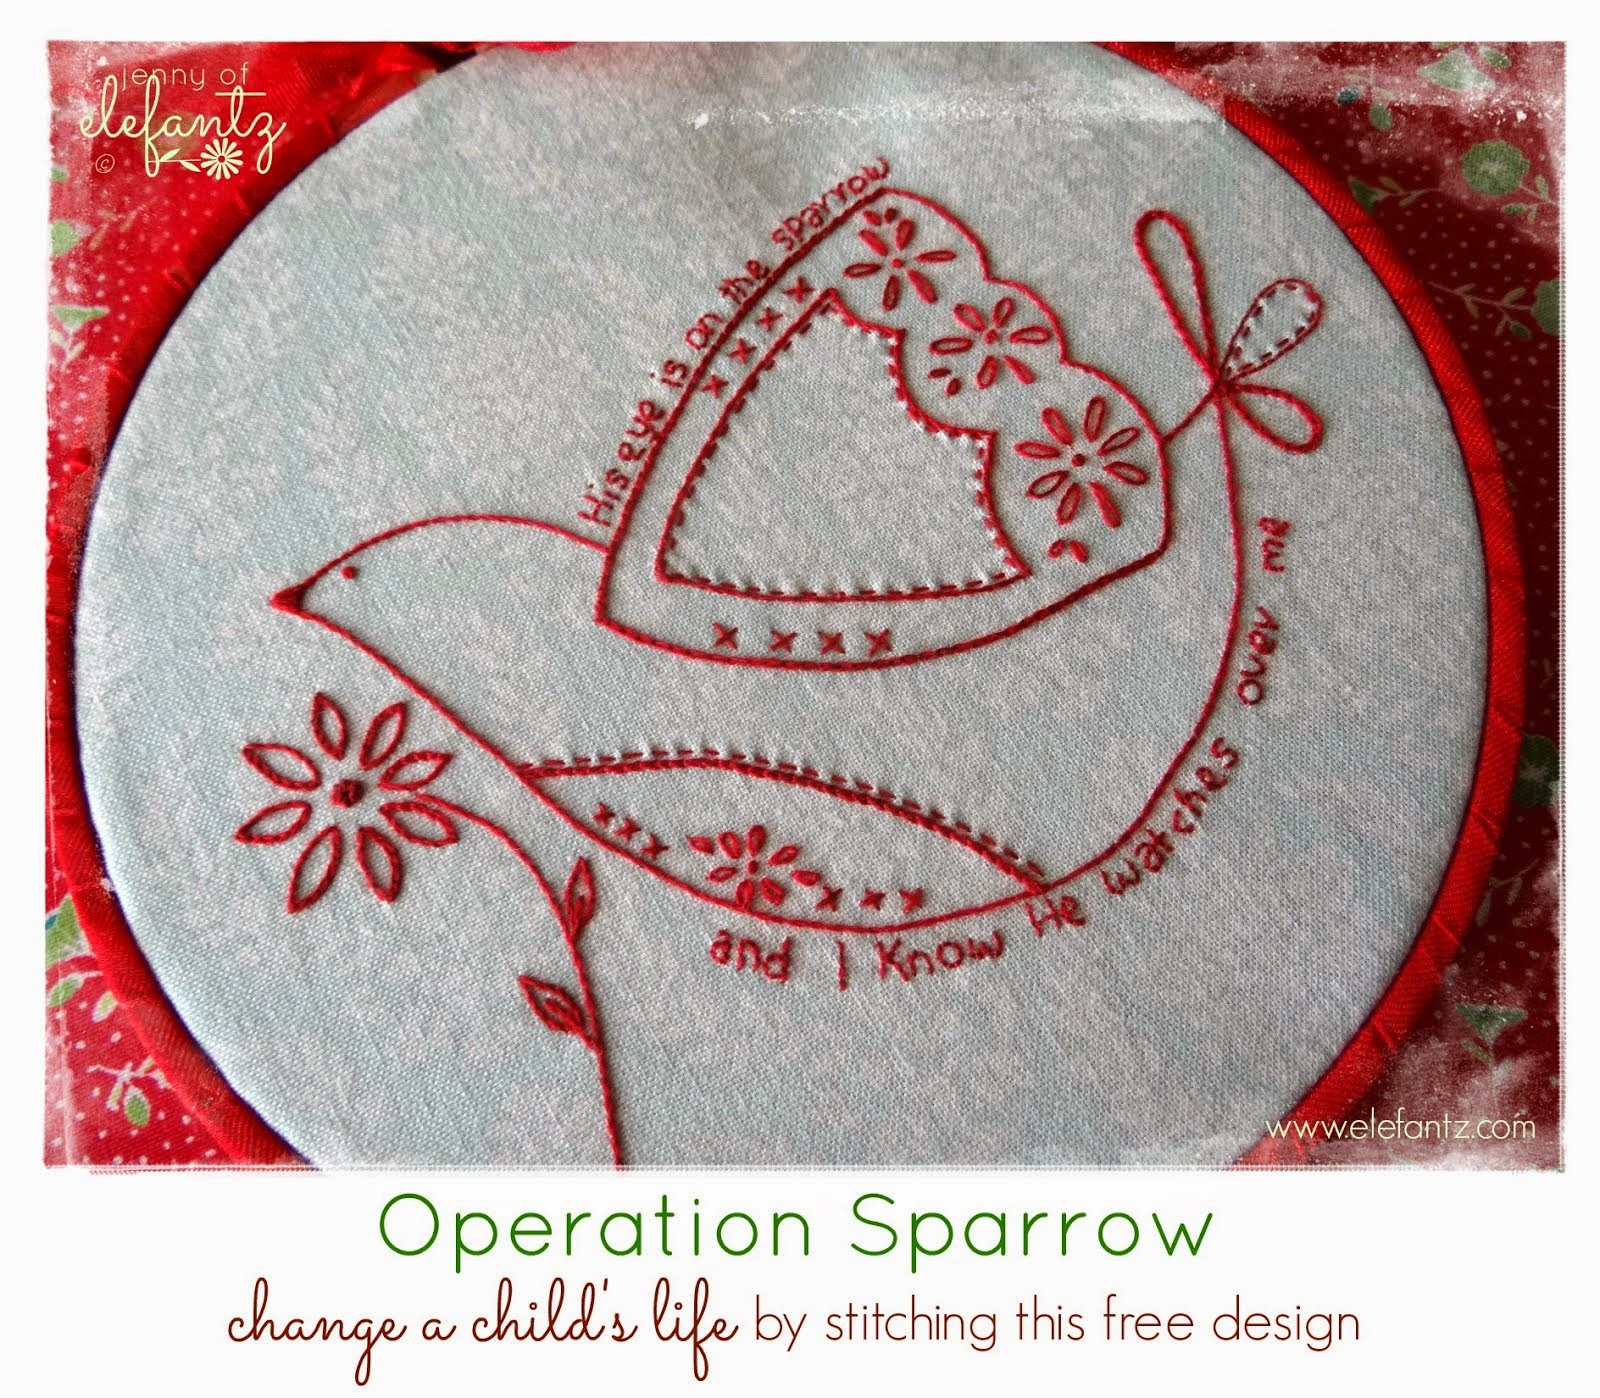 Join operation sparrow! coming soon...